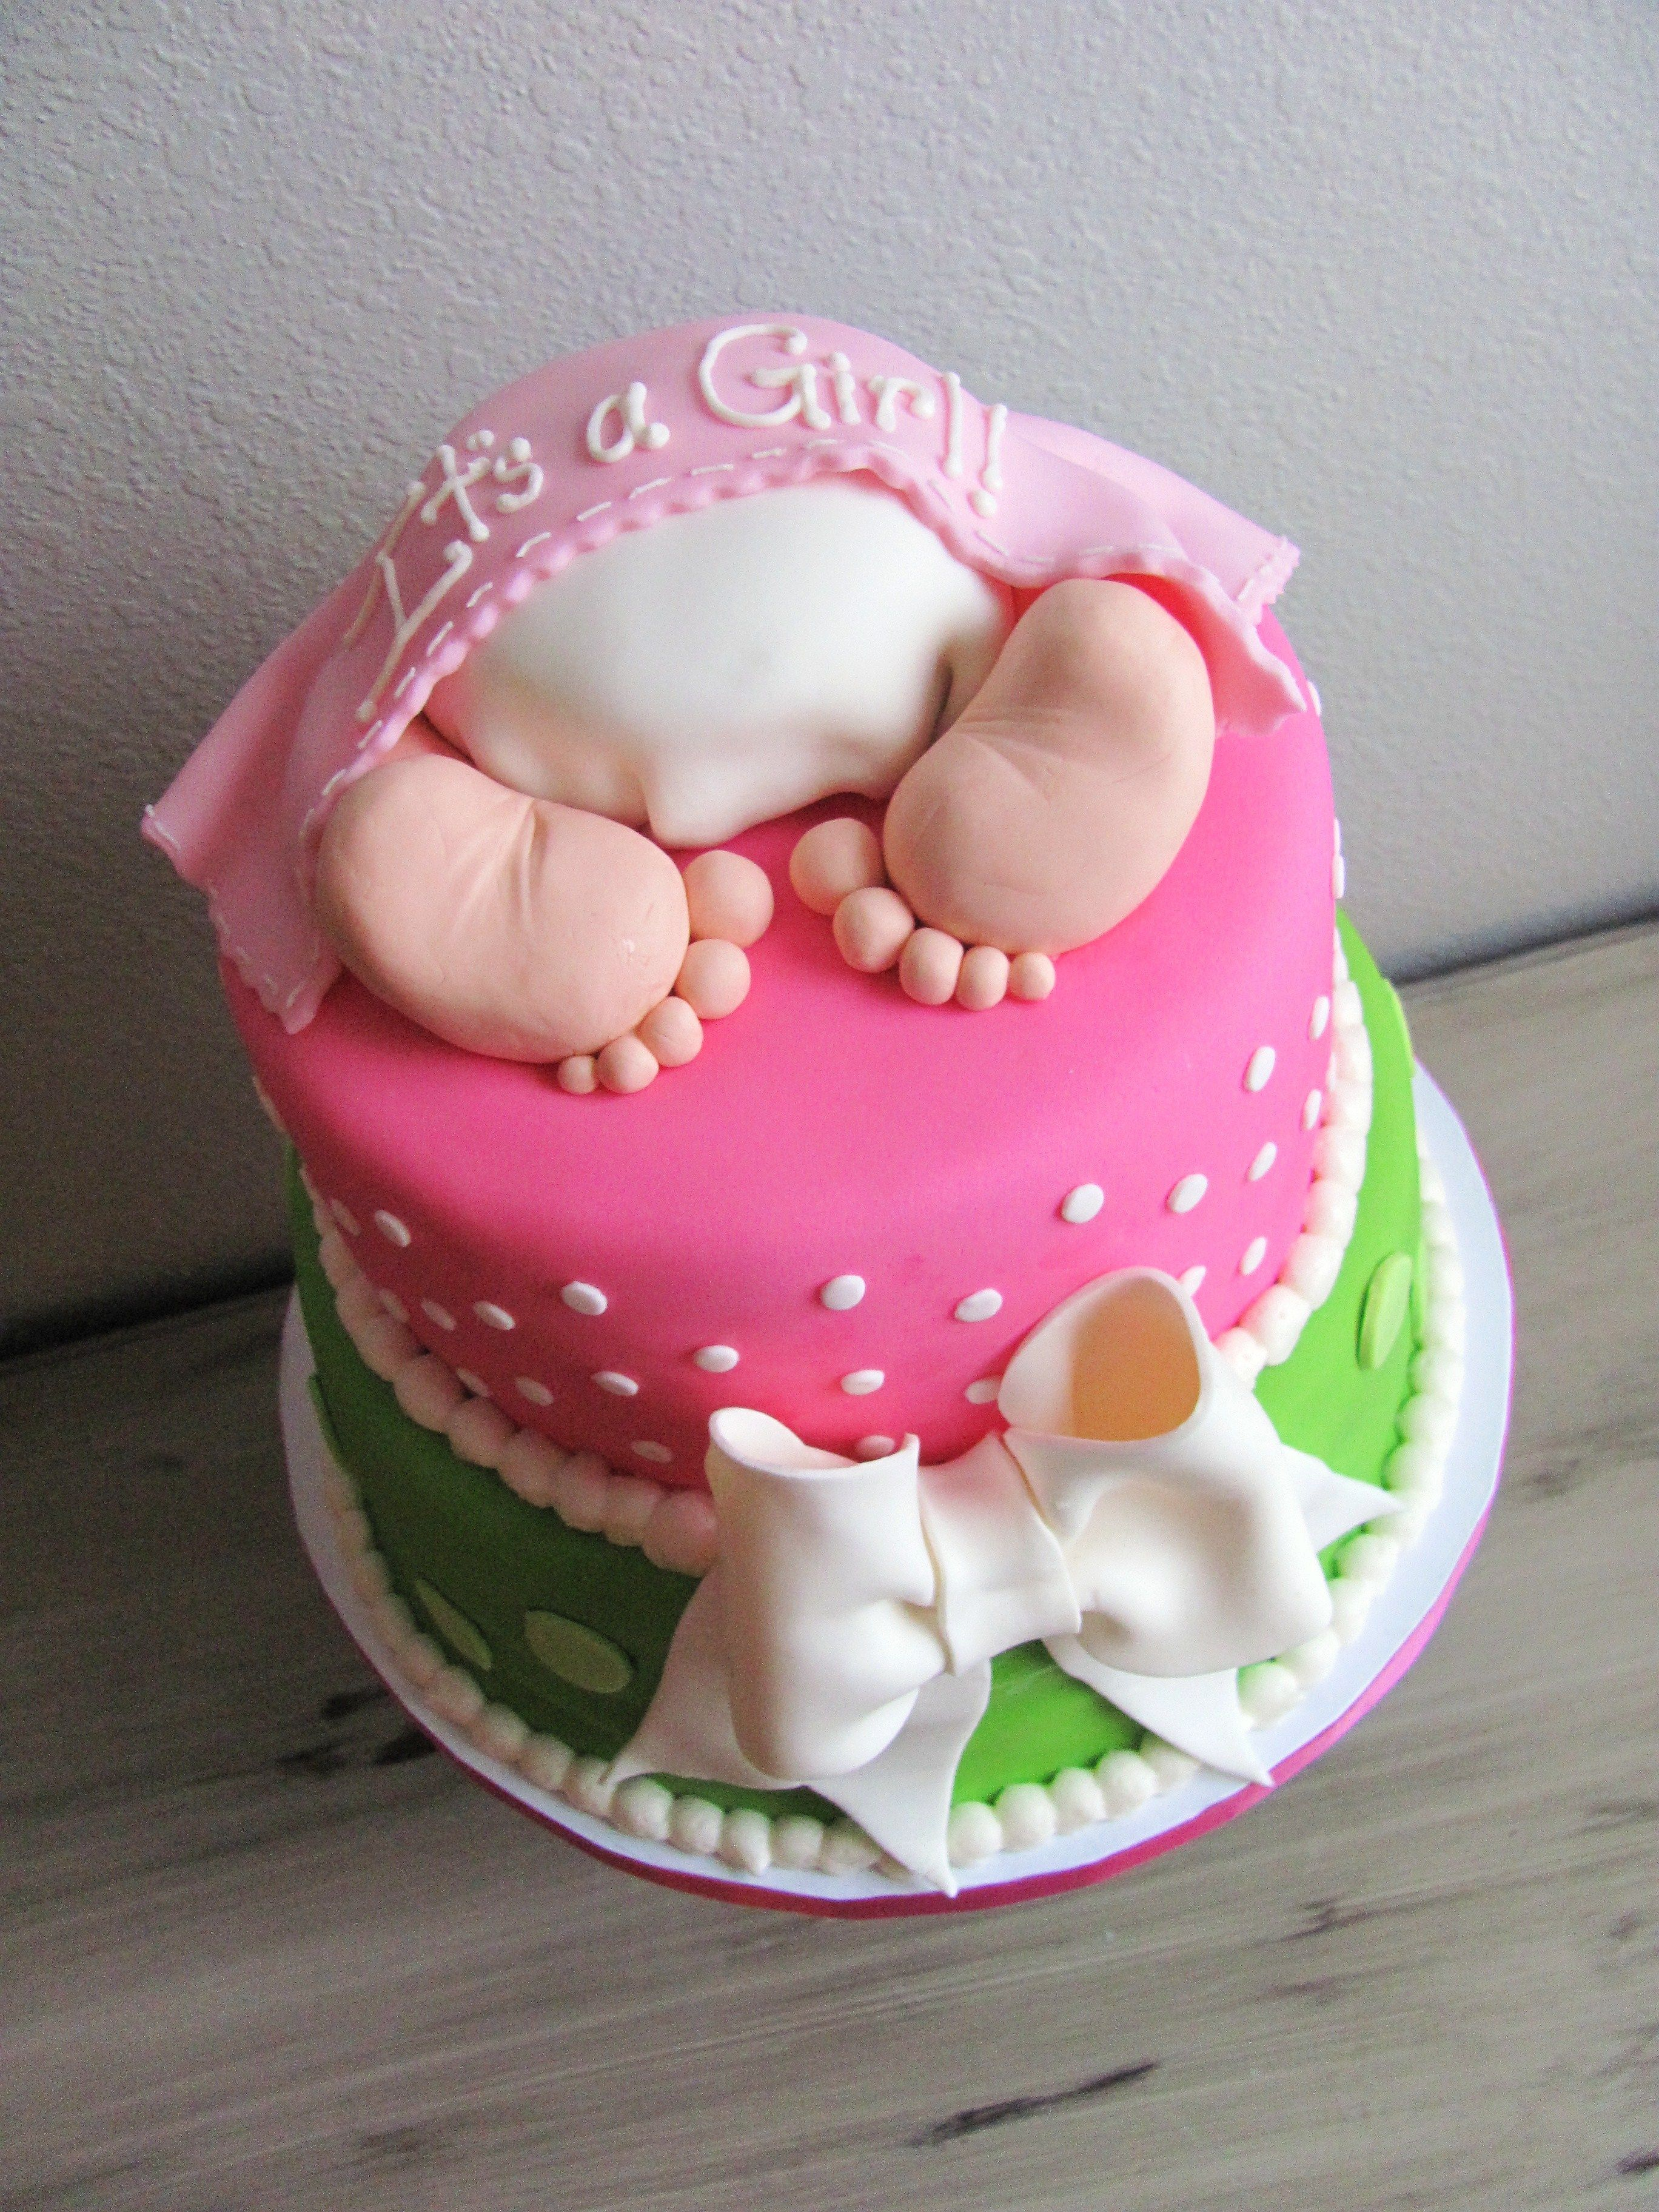 Baby Shower Cakes For Girlpartybabyshower Partybabyshower Baby